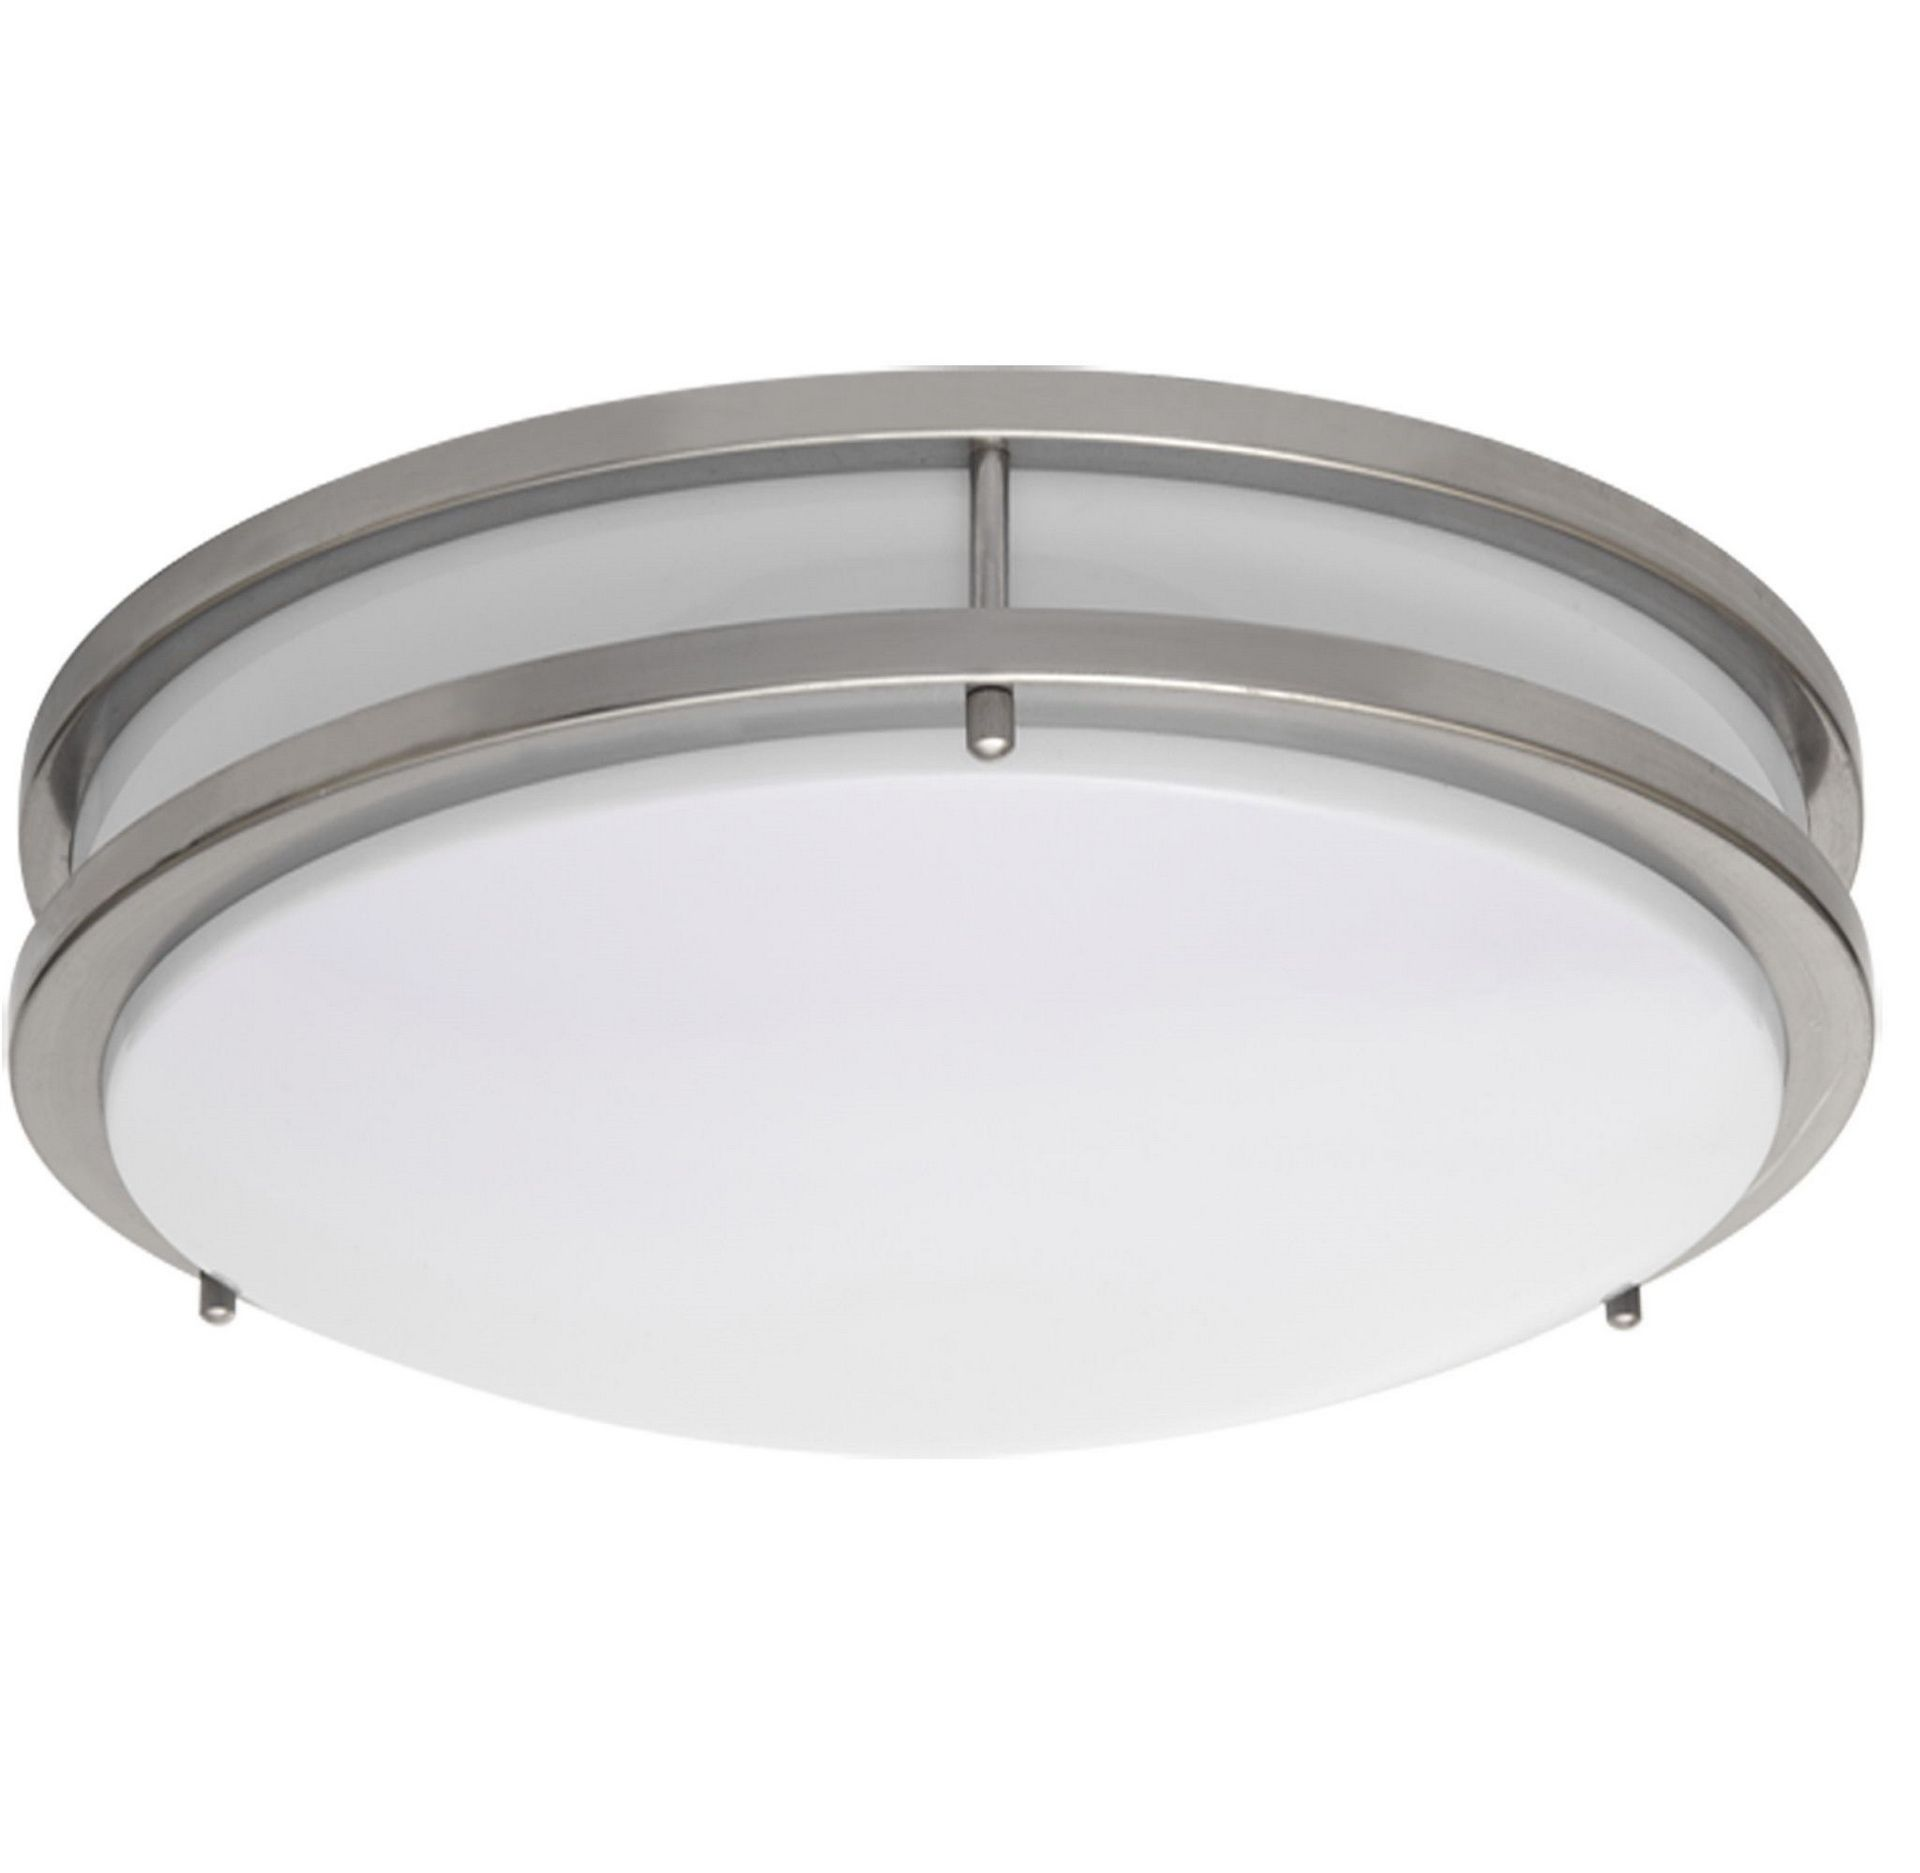 Home Depot Ceiling Lamps 25 Ways To Bring Brilliant Lighting Into Your Homes Warisan Lig Home Depot Light Fixture Kitchen Ceiling Lights Led Ceiling Lights